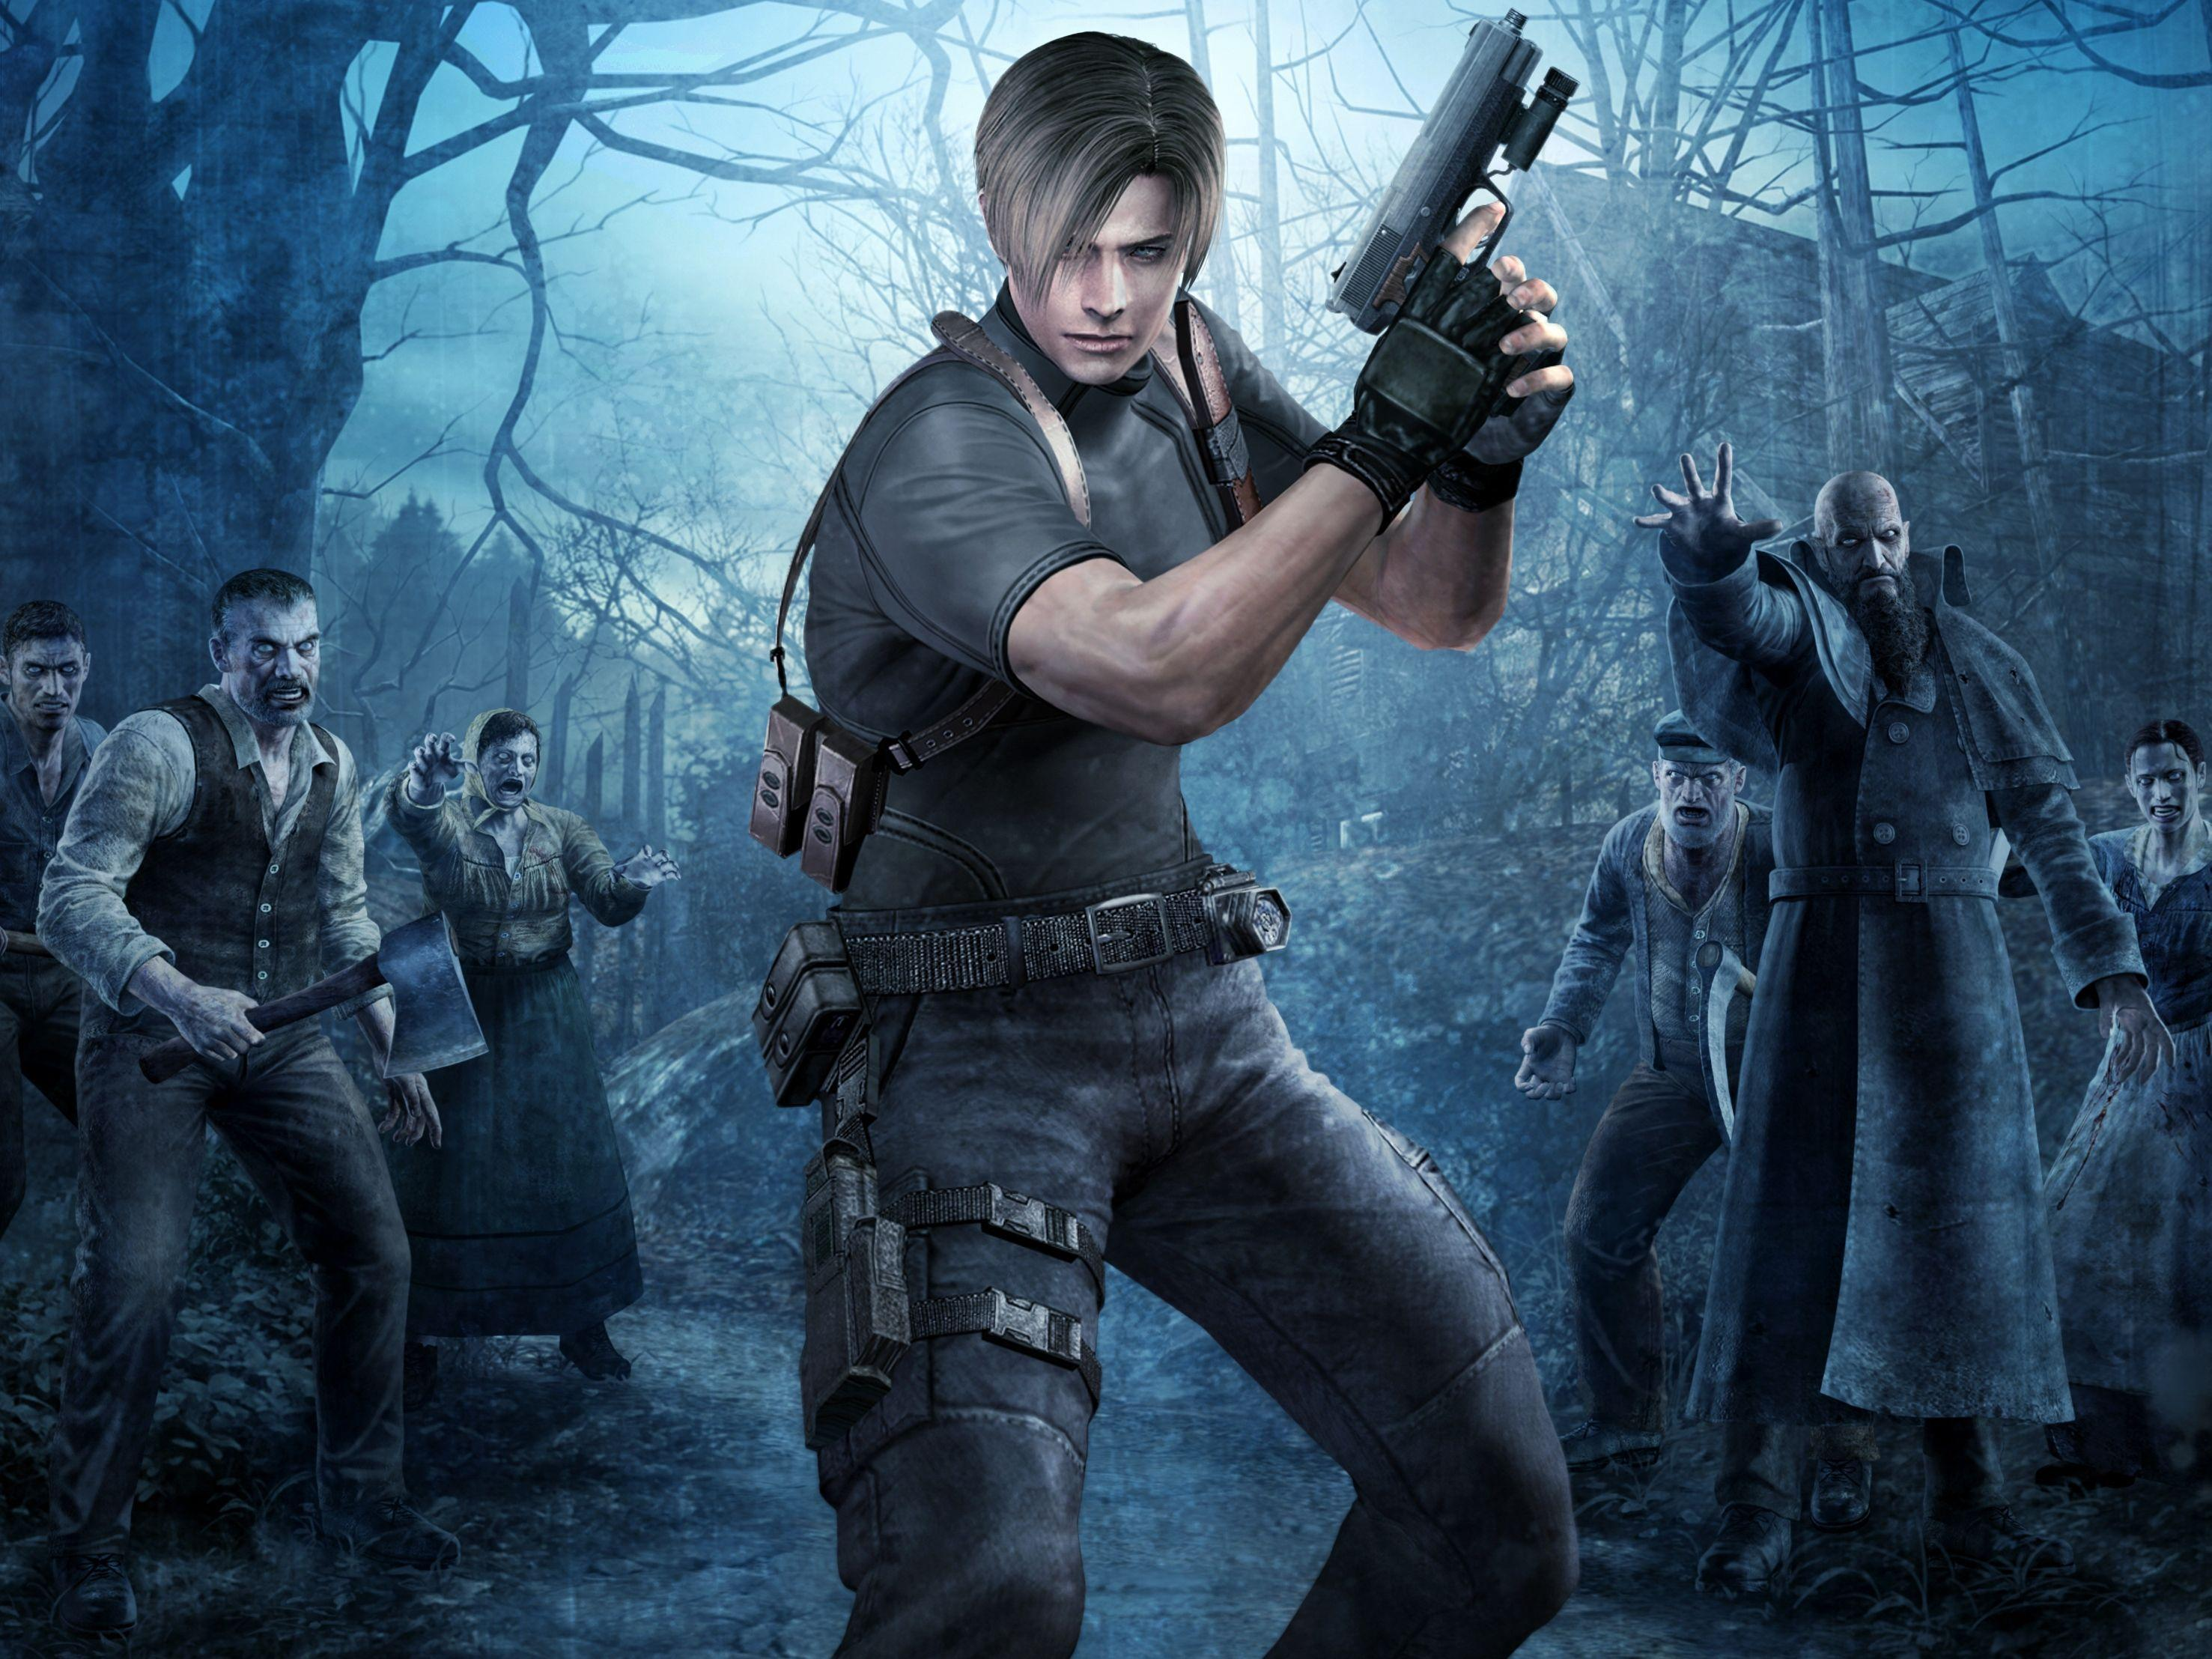 Resident Evil 4 Full HD Wallpapers and Backgrounds Image